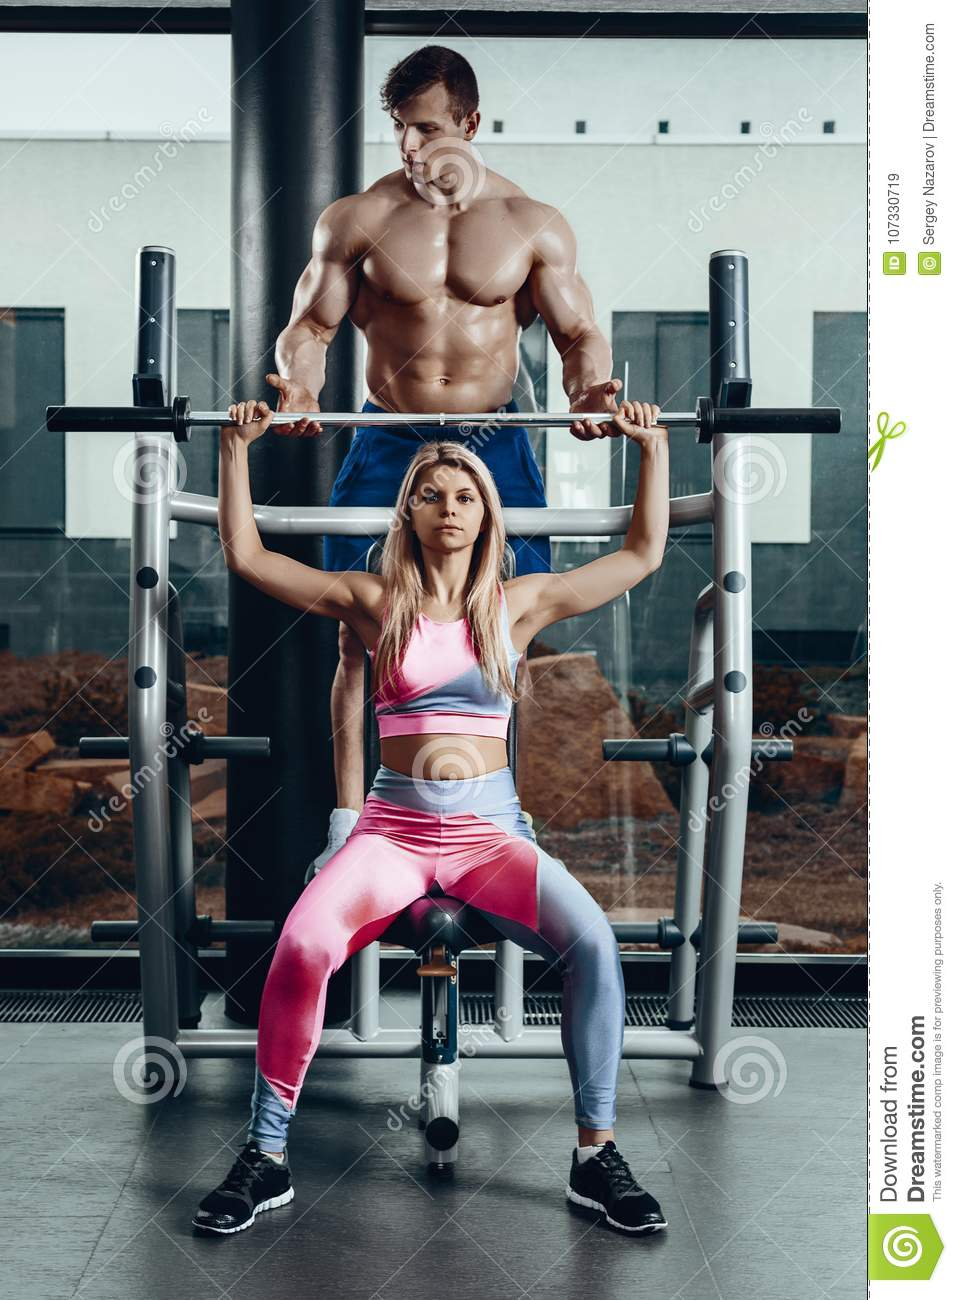 Sport, fitness, teamwork, bodybuilding and people concept - young woman and personal trainer with barbell flexing